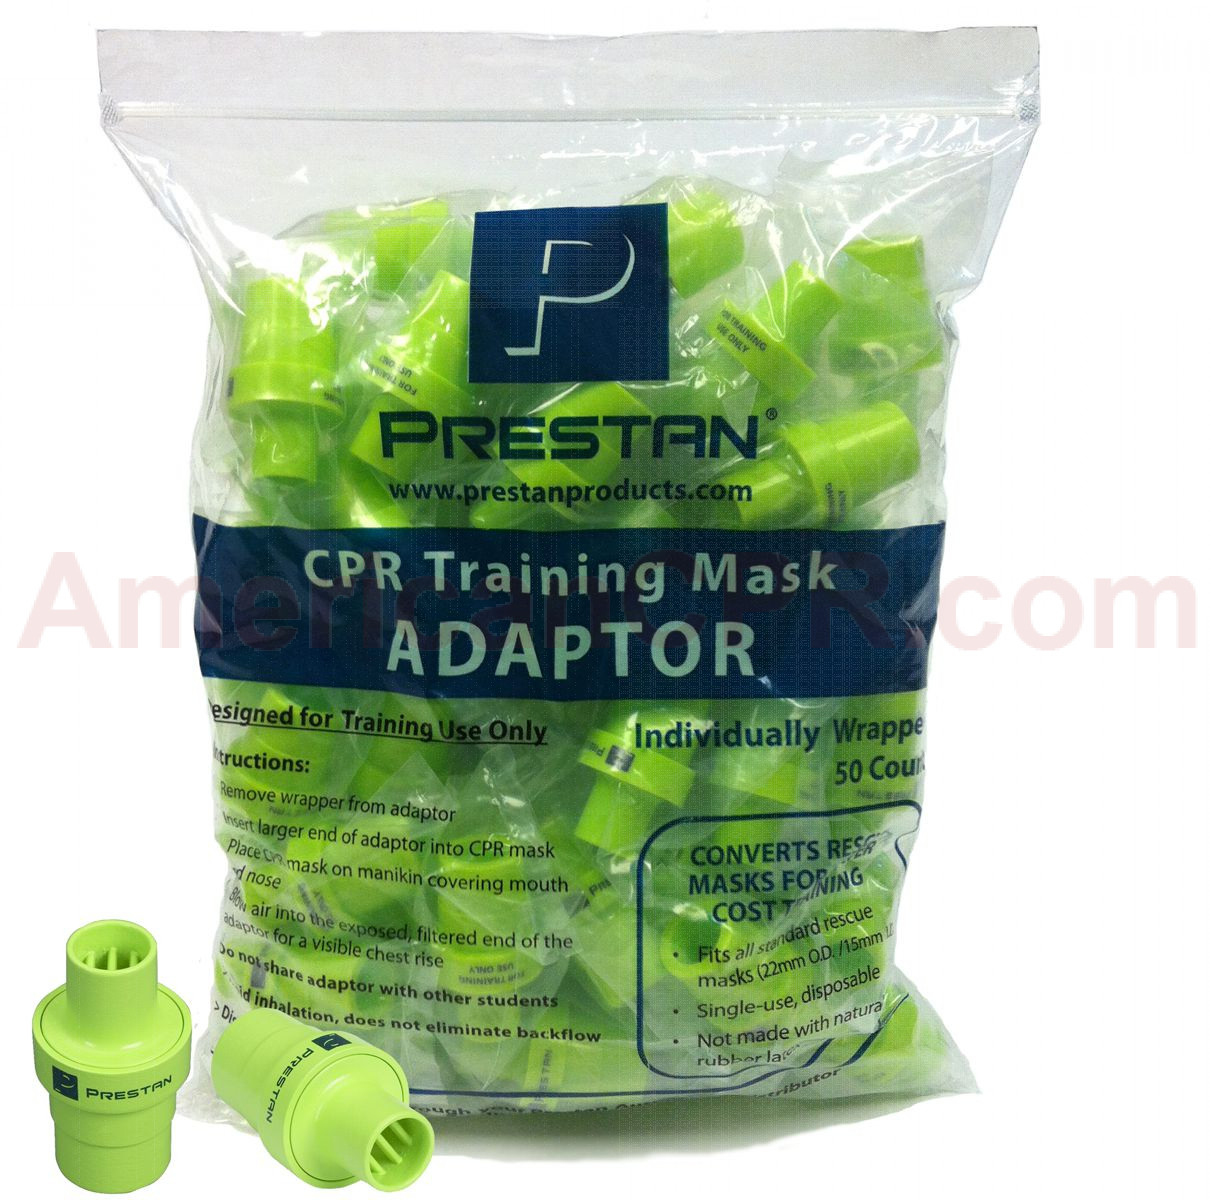 Prestan Rescue Mask Training Adapter, 50 Per Pack, Prestan Products